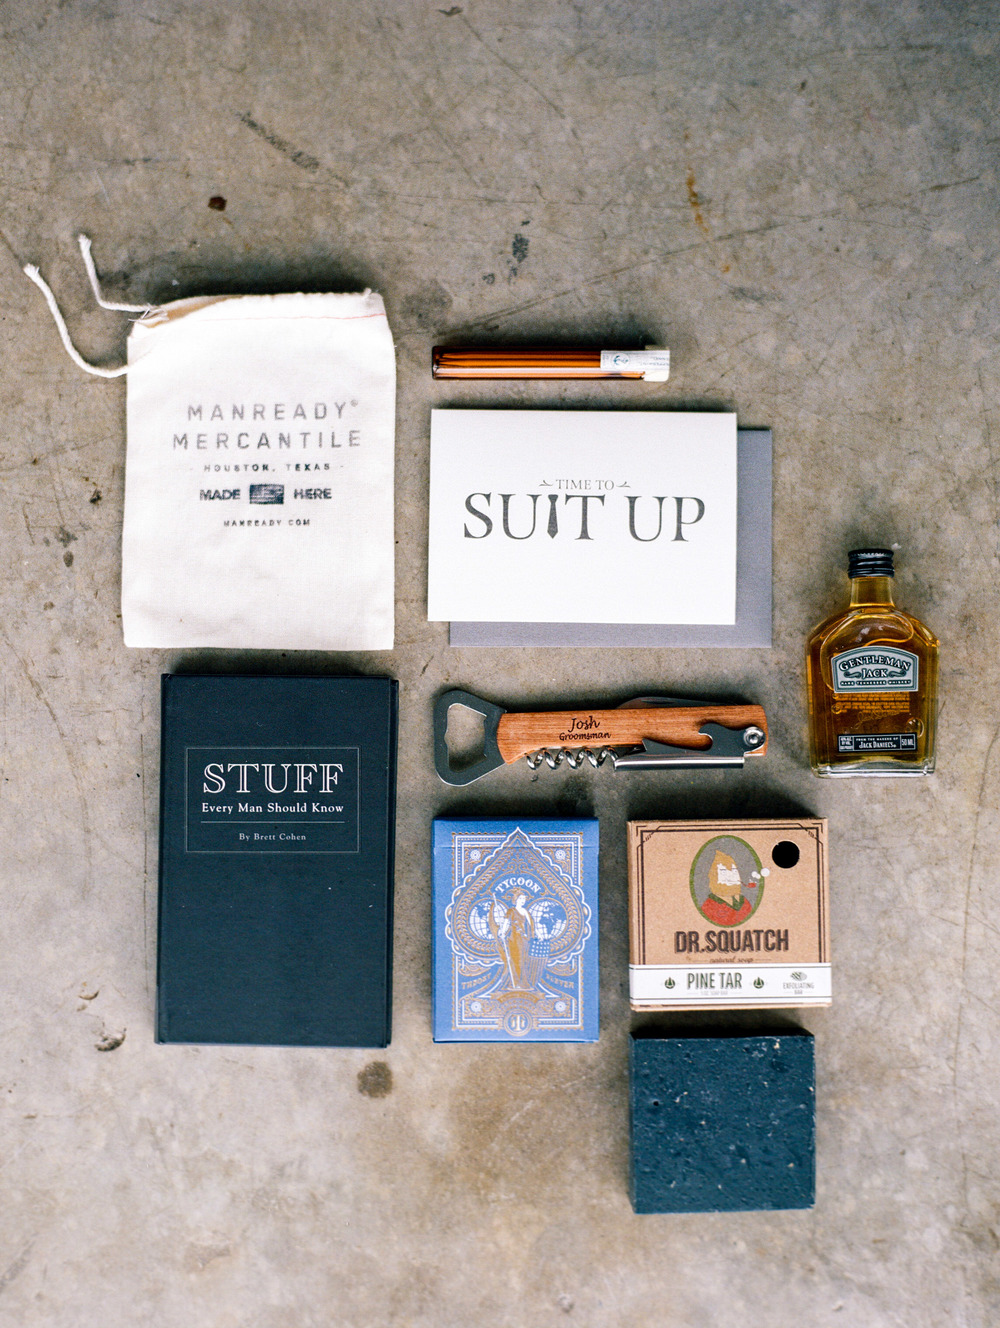 Dana Fernandez Photography Houston Wedding Photographer Groomsmen Gifts Film Will You Be My Manready Mercantile-1.jpg